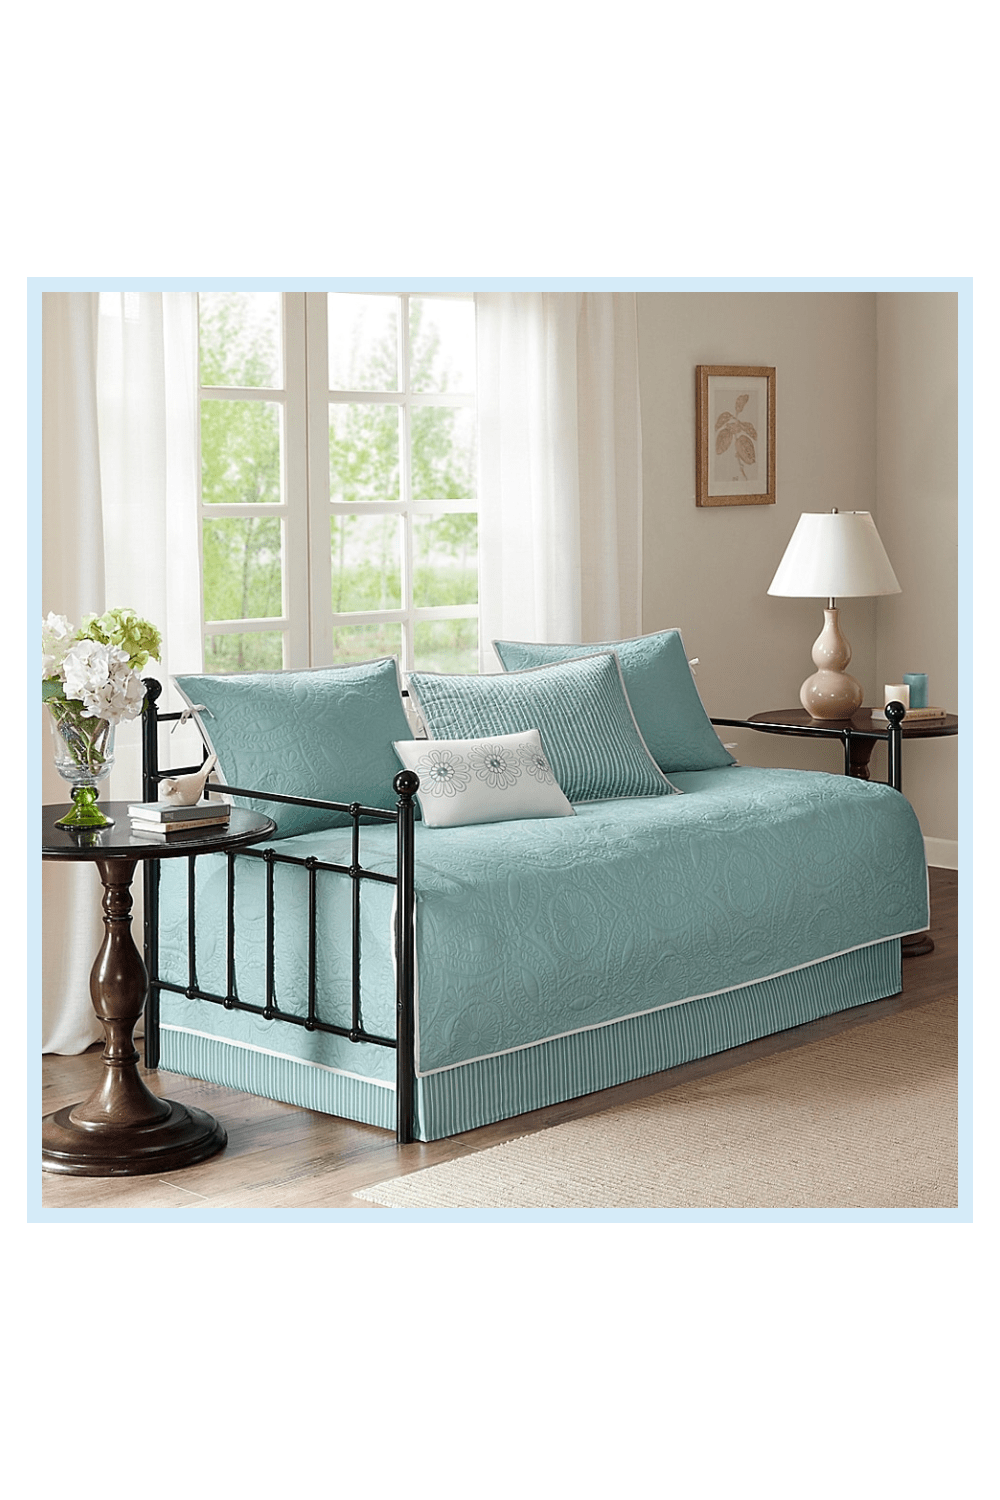 Pin on daybed design